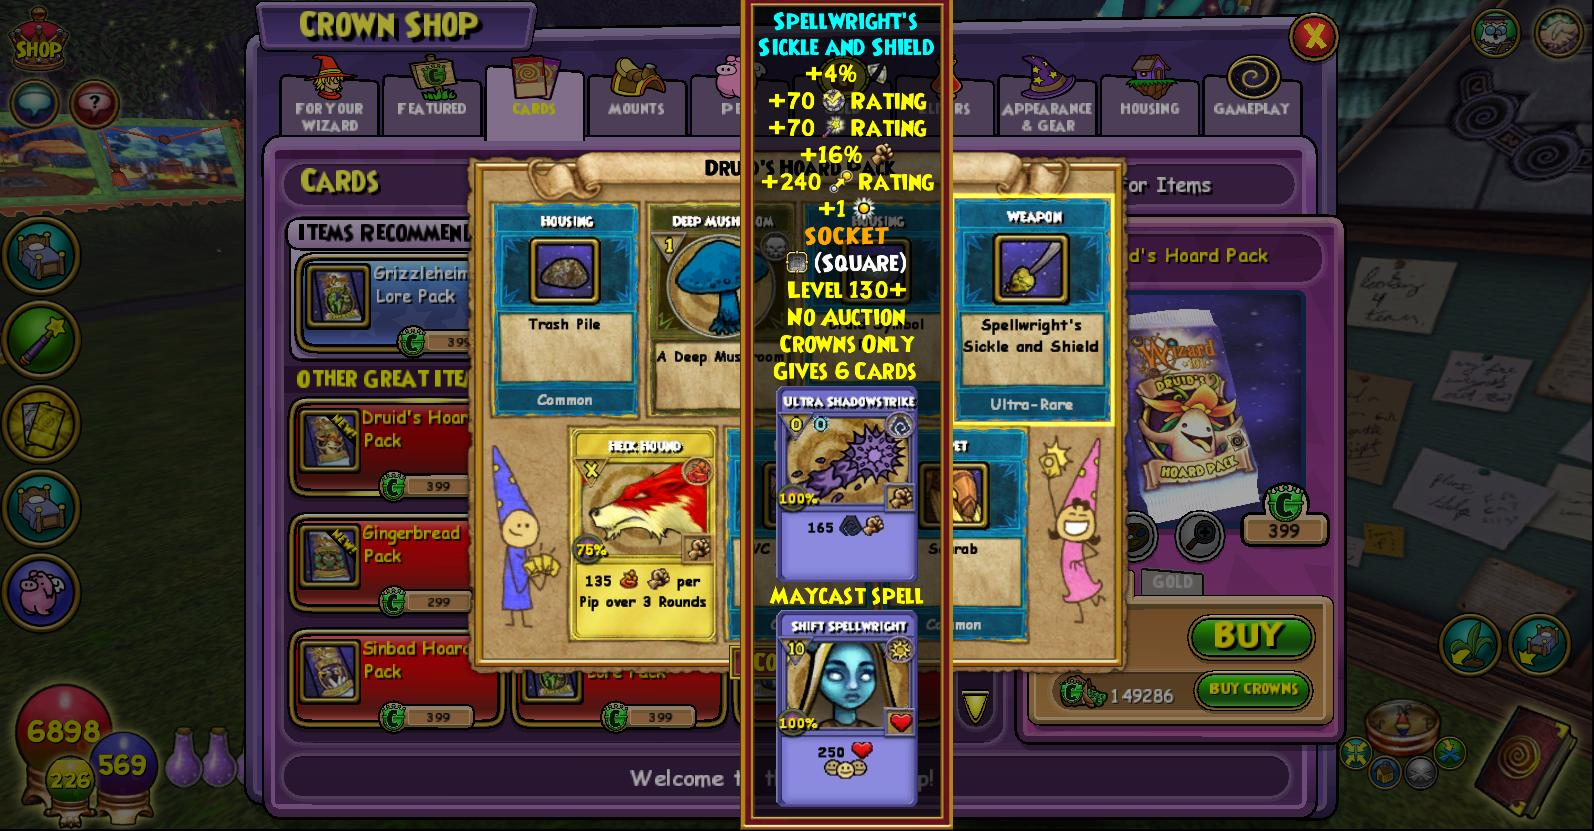 Name:  _spellwright's sickle and shield.jpg Views: 160 Size:  247.1 KB